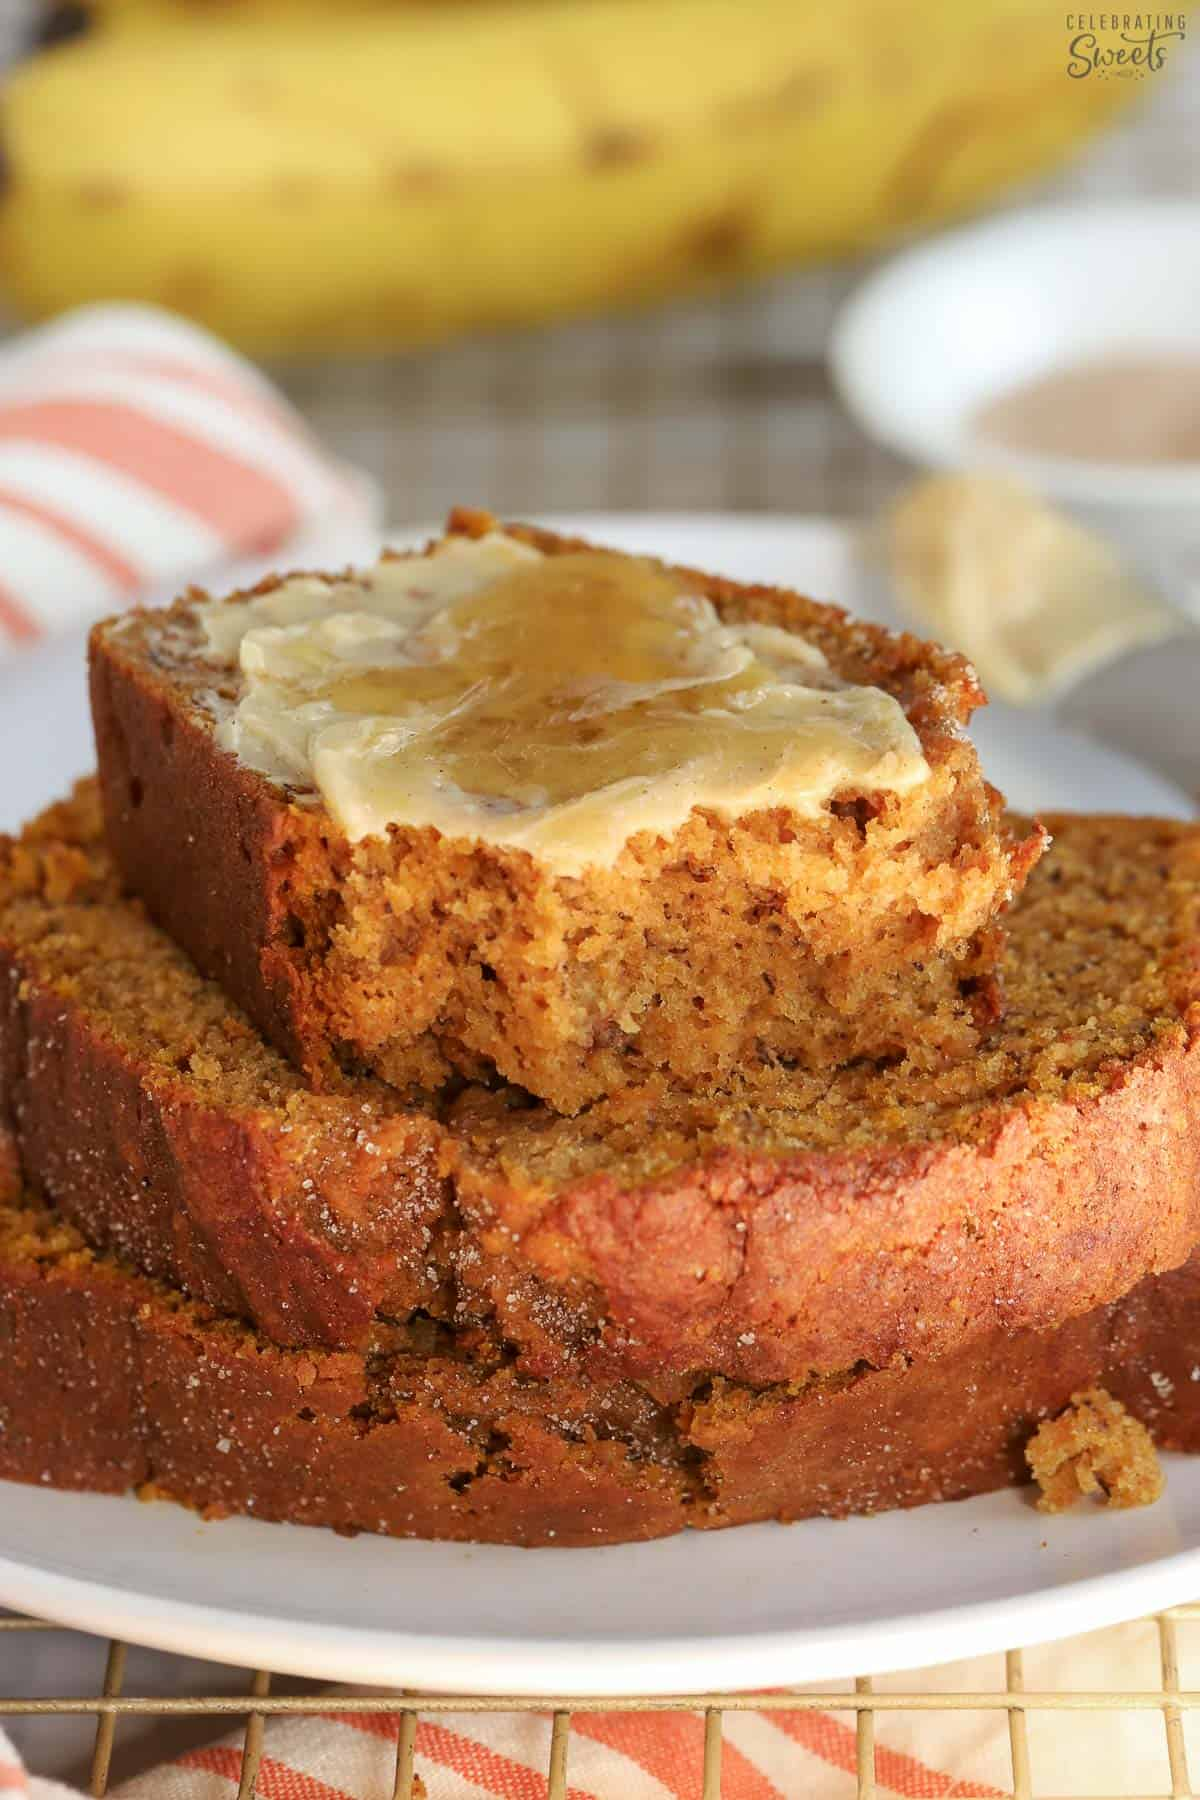 Three slices of pumpkin banana bread on a white plate with bananas in the background.